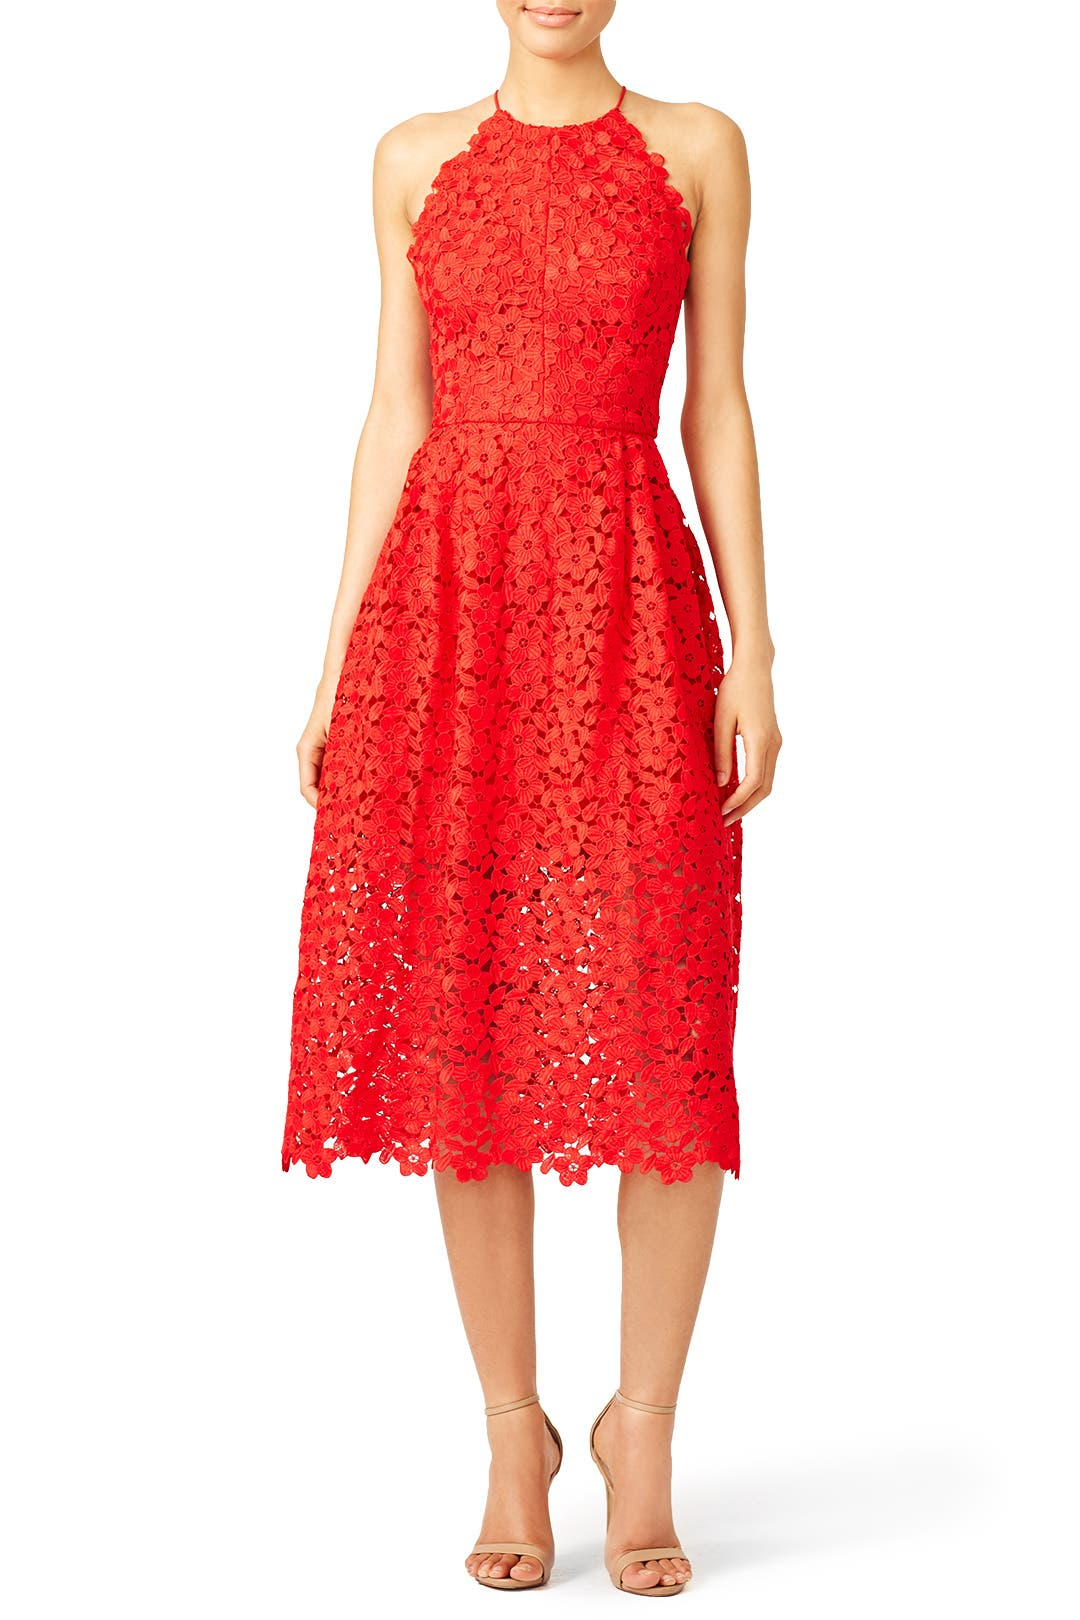 Cherry Red Lace Halter Dress by Cynthia Rowley for $55 ...